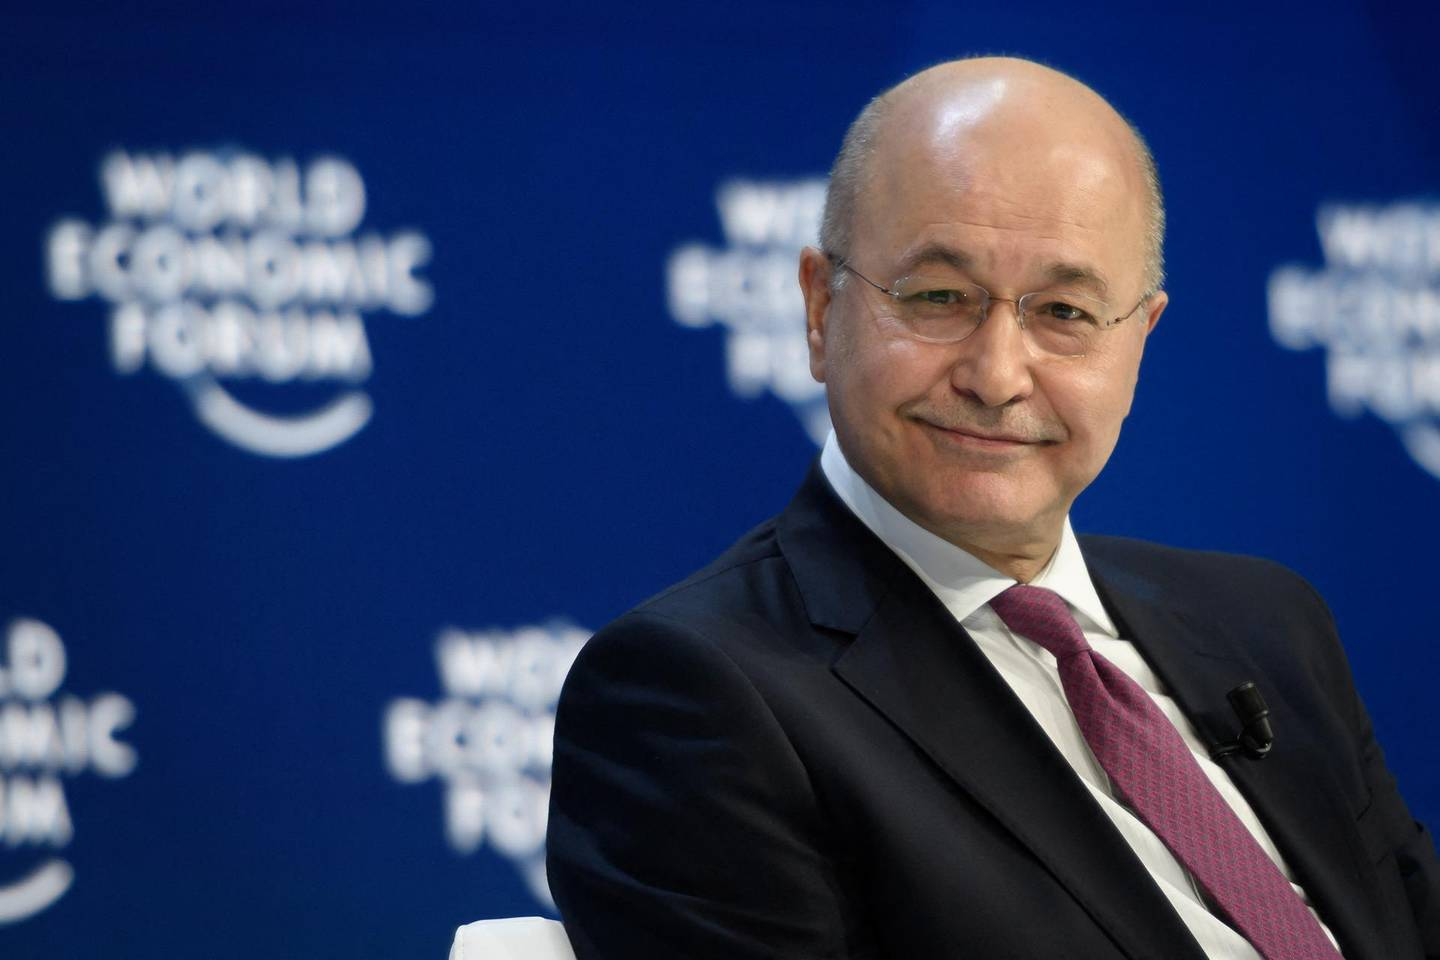 Iraqi President Barham Saleh attends a session at the World Economic Forum (WEF) annual meeting in Davos, on January 22, 2020. (Photo by Fabrice COFFRINI / AFP)